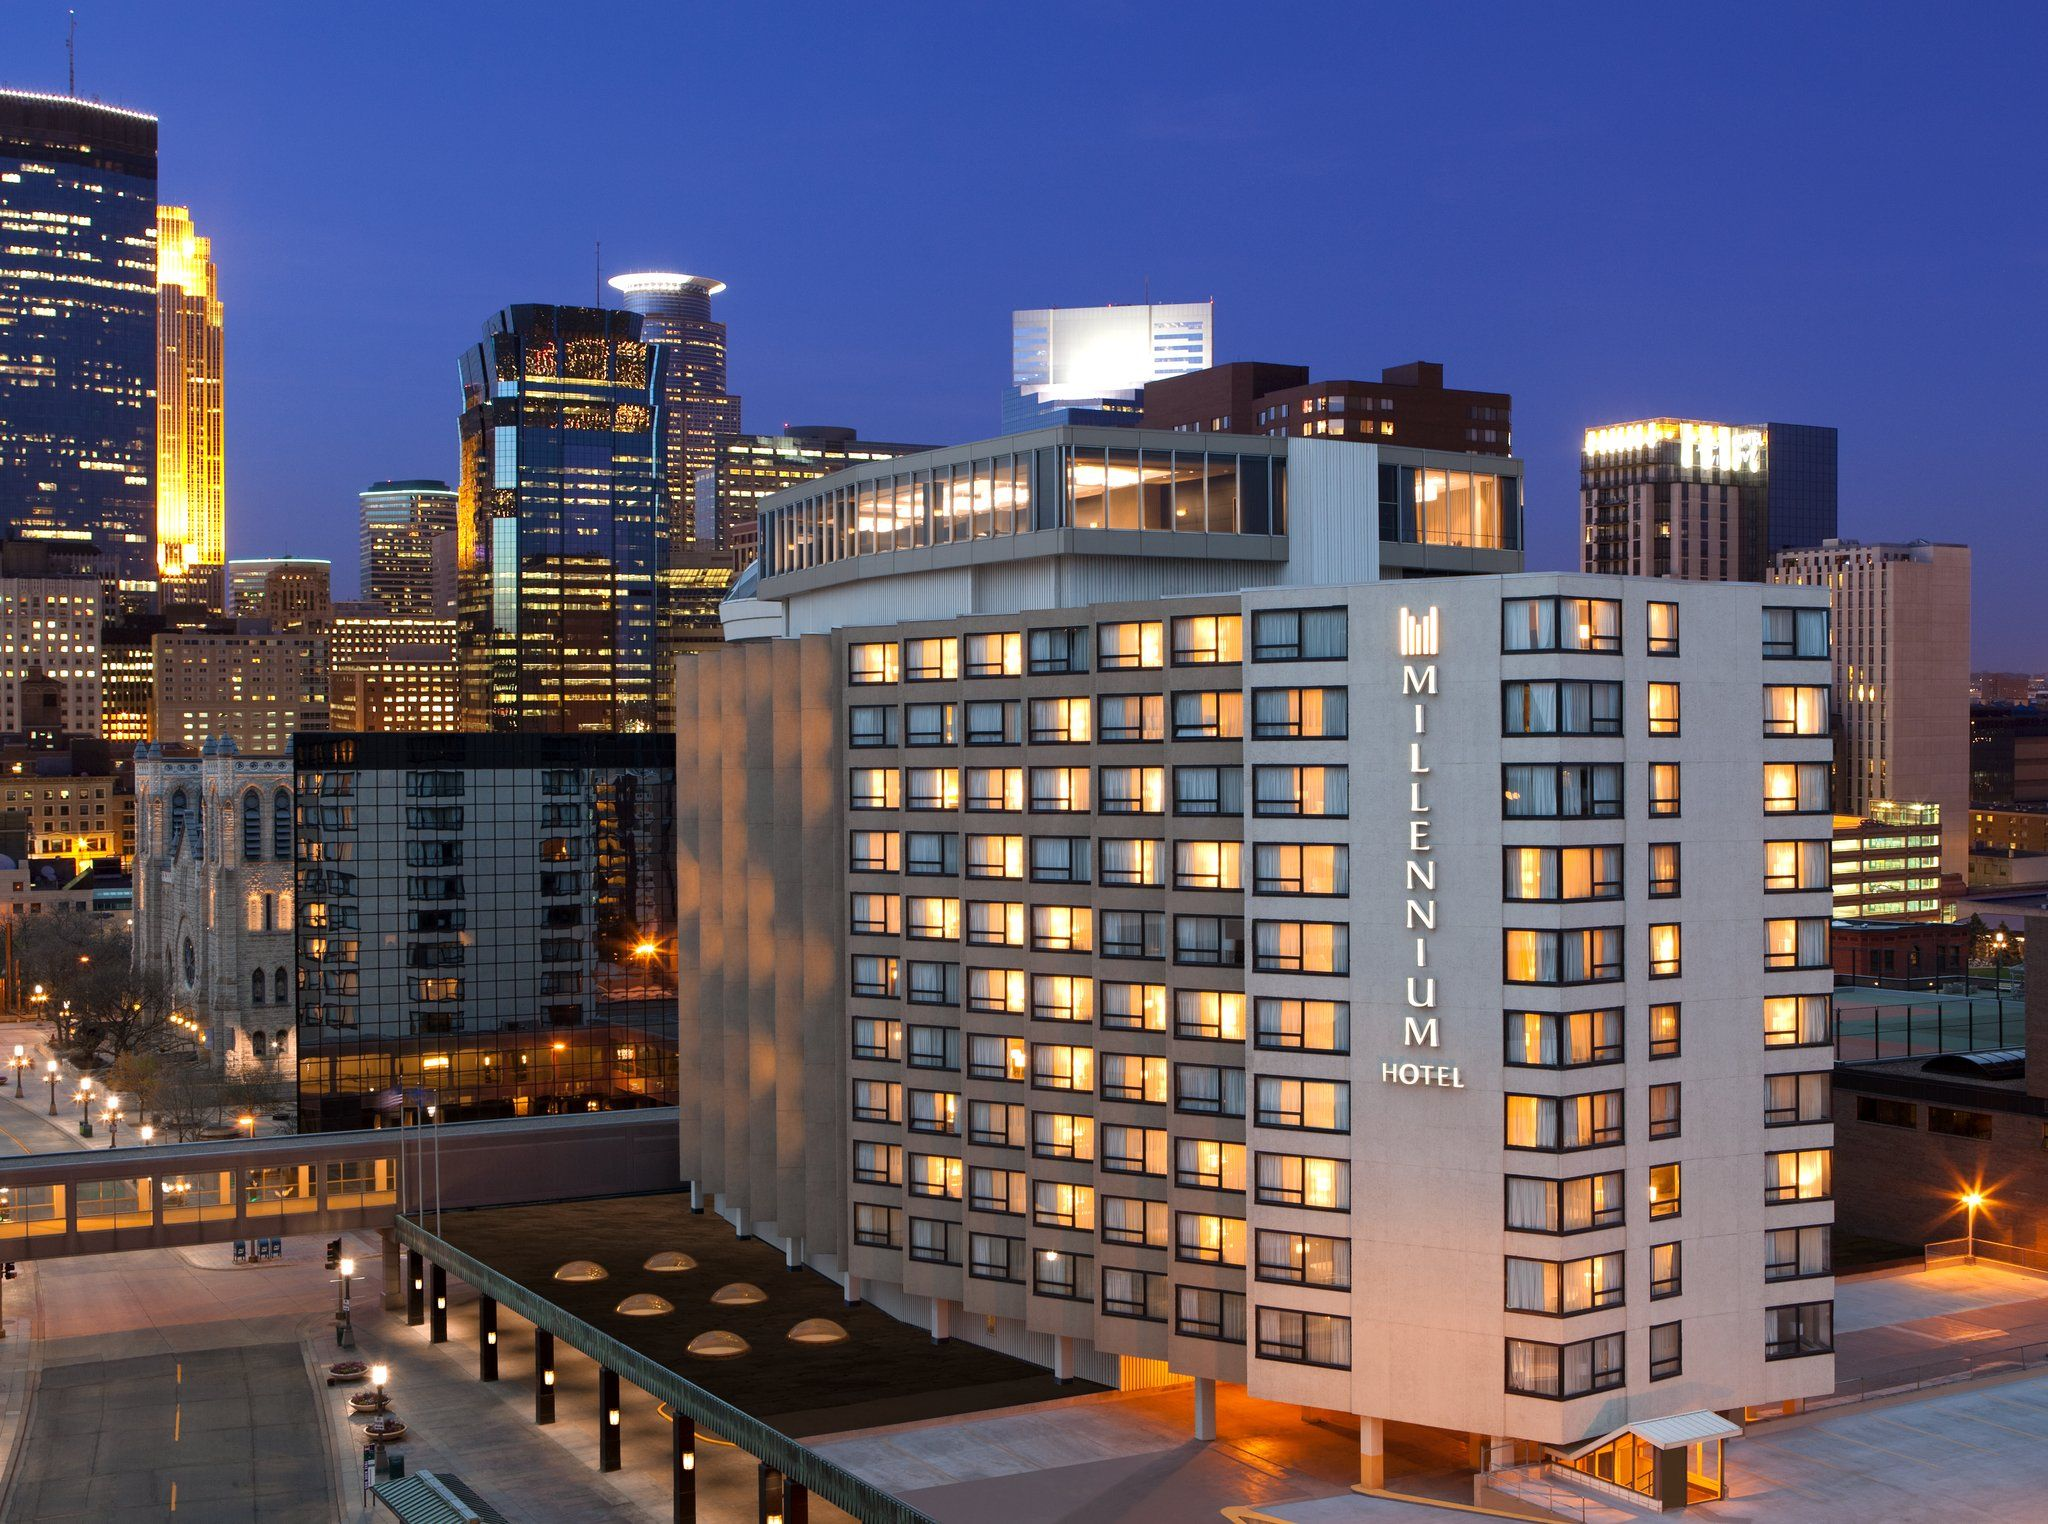 Hotels In Minneapolis Millennium Hotels And Resorts With Images Millennium Hotel Minneapolis Hotels Copthorne Hotel